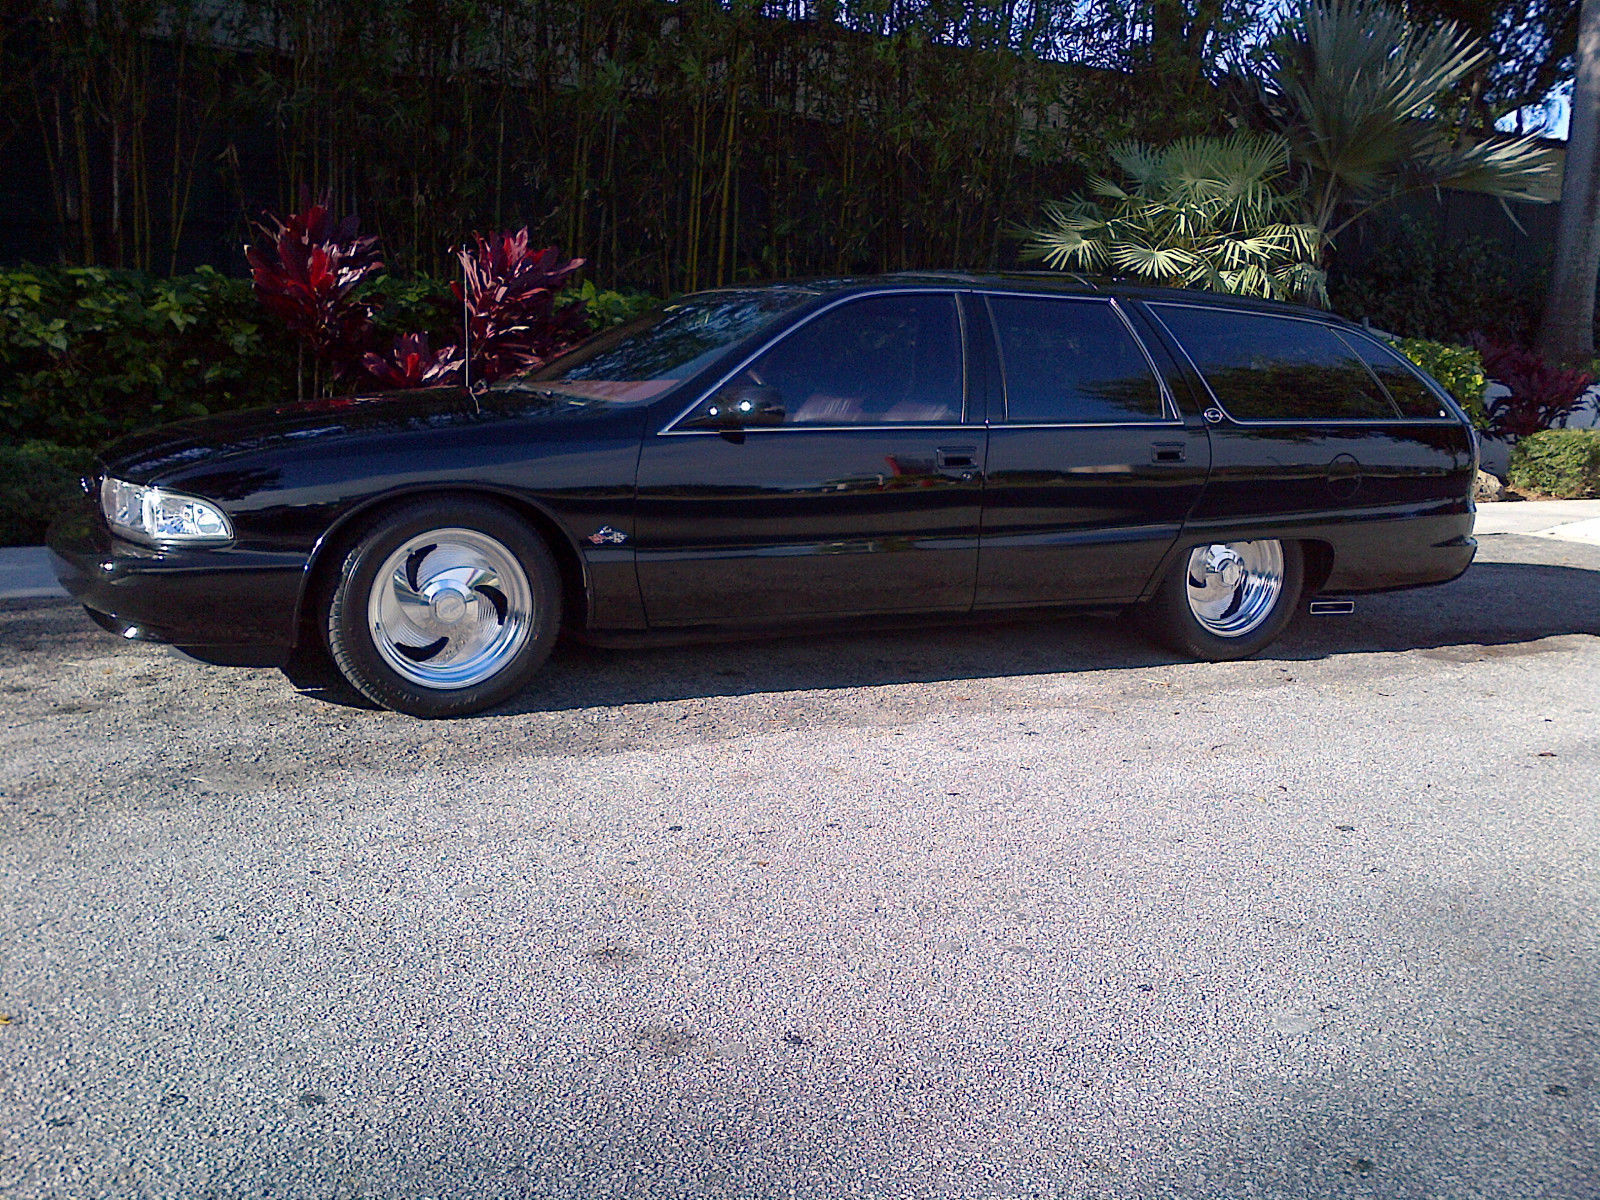 1994 chevrolet impala ss conversion from buick estate wagon classic chevrolet impala 1994 for sale. Black Bedroom Furniture Sets. Home Design Ideas